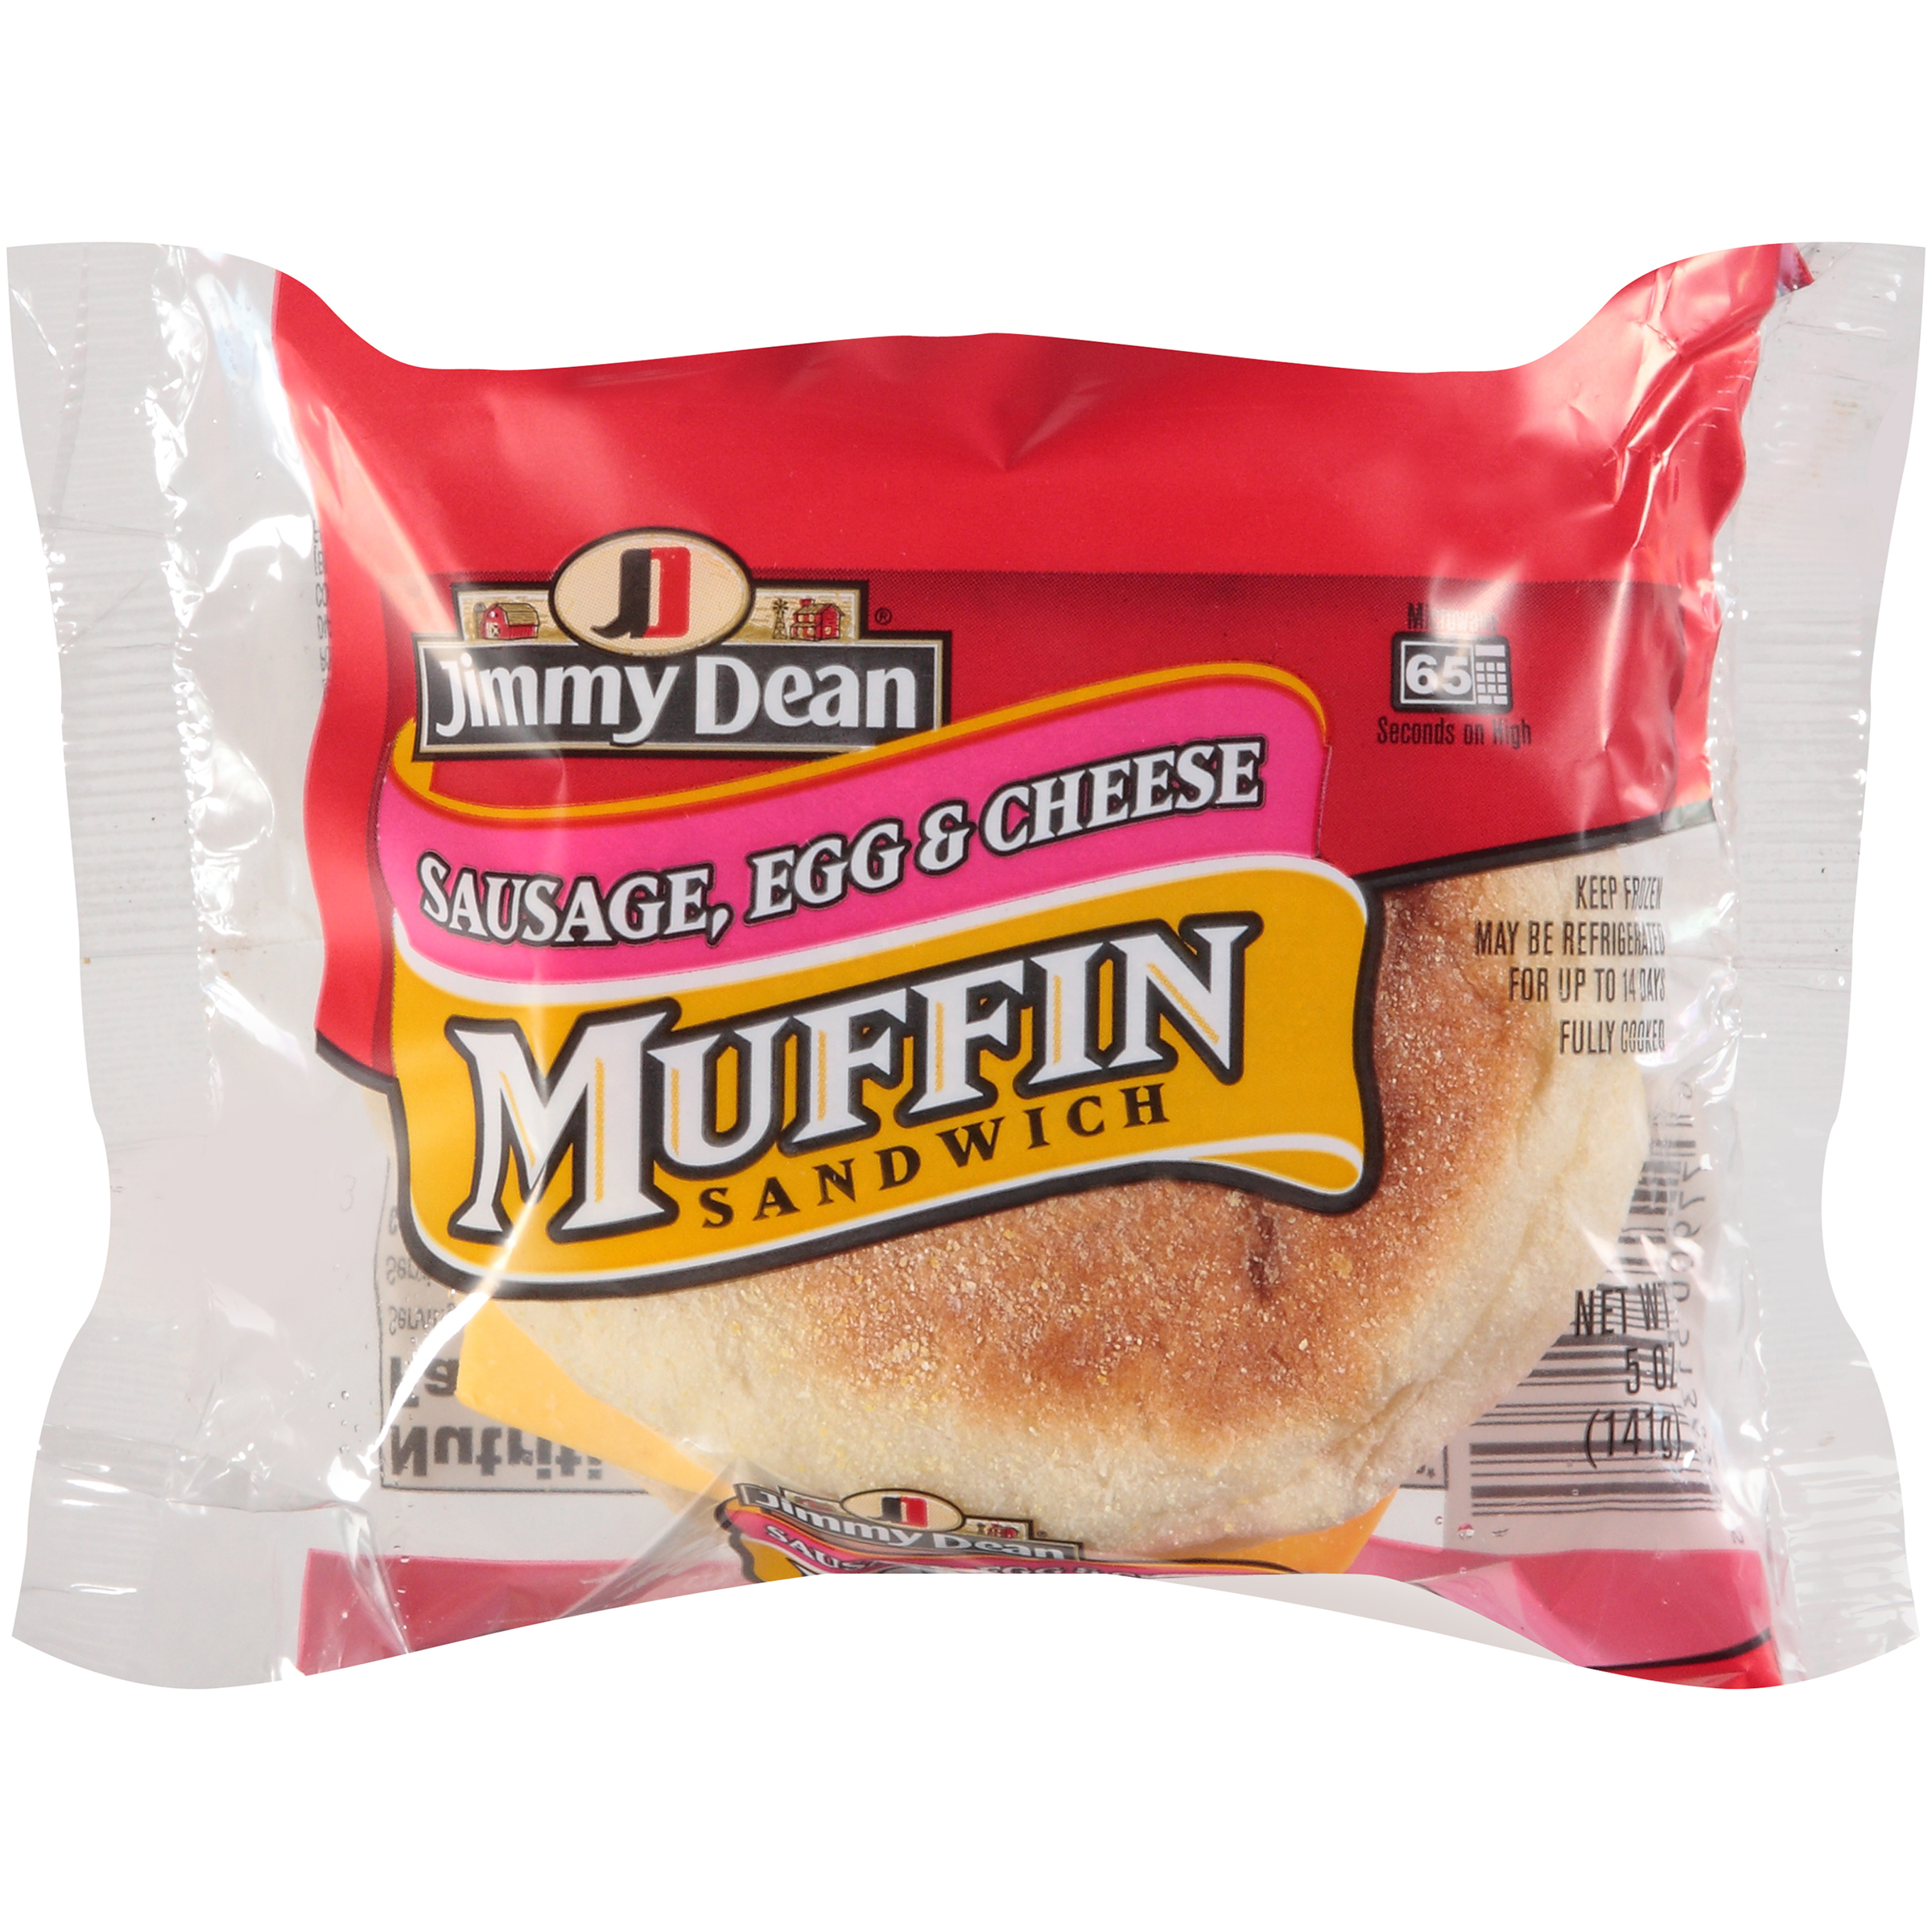 Jimmy Dean Sausage, Egg and Cheese Muffin Sandwich, 5 oz., 12 per case